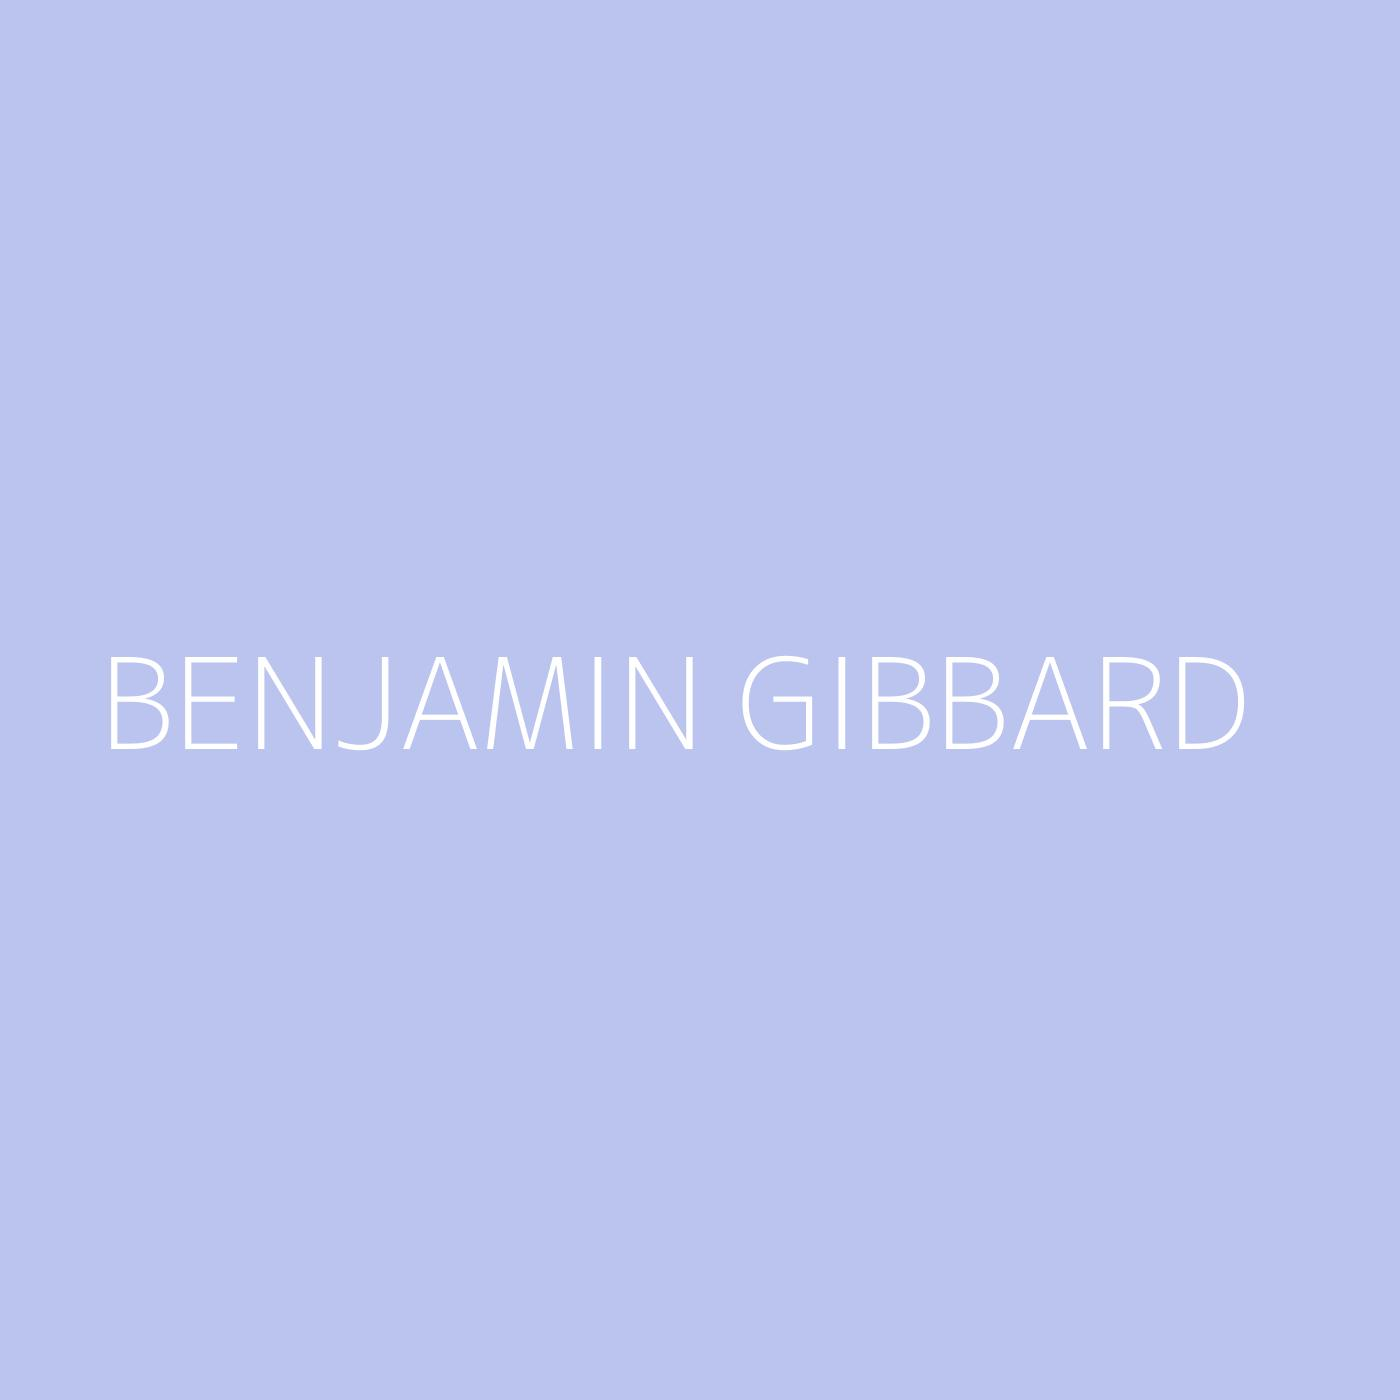 Benjamin Gibbard Playlist Artwork